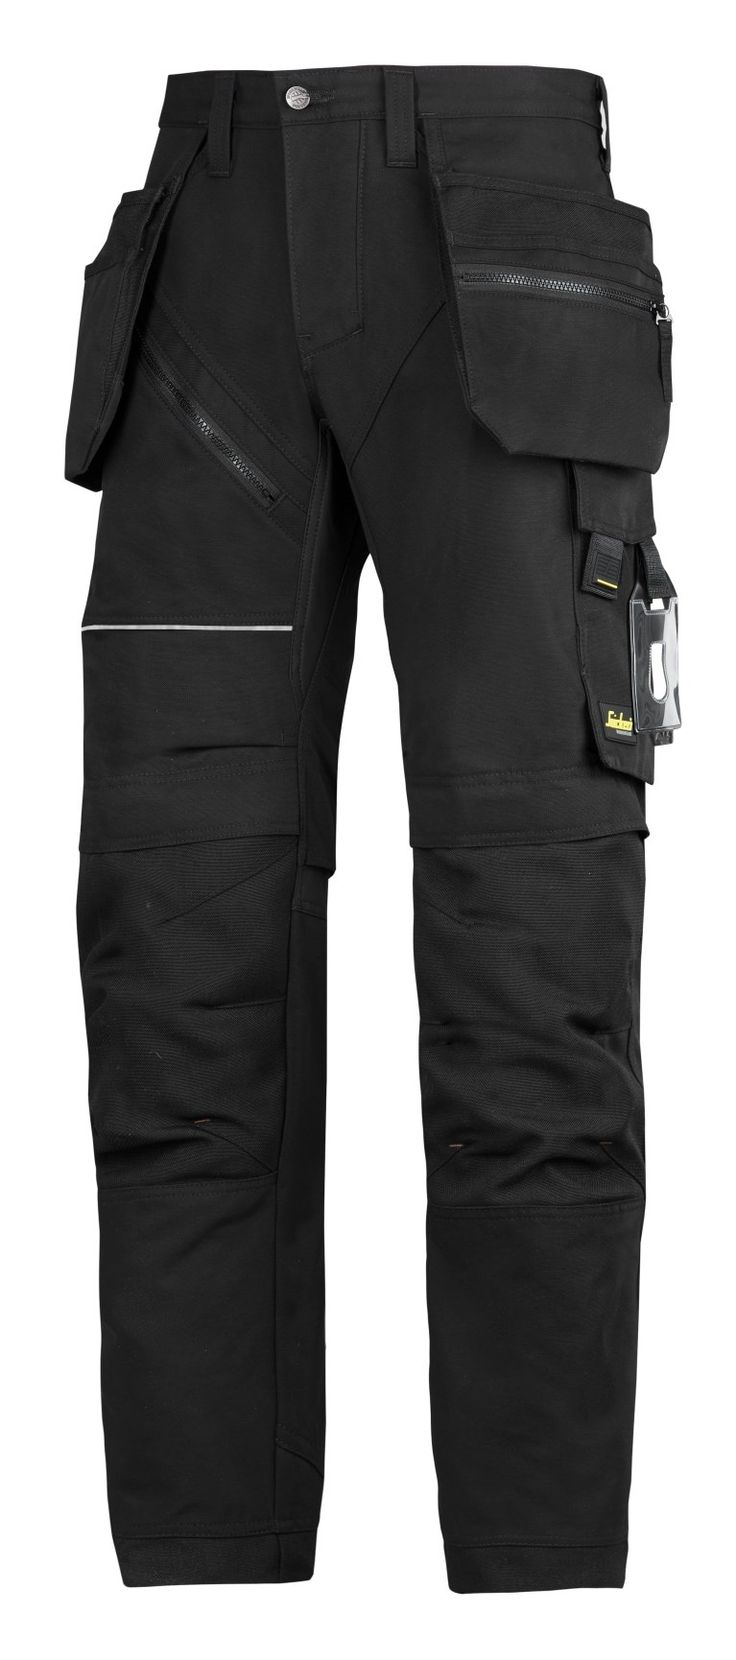 Tough design for rough work. Modern heavy-duty work #trousers combining amazing fit with reinforced functionality. Features Cordura® 1000 reinforced knee protection, built-in ventilation and stretch gusset in crotch for #hardwearing comfort at work.